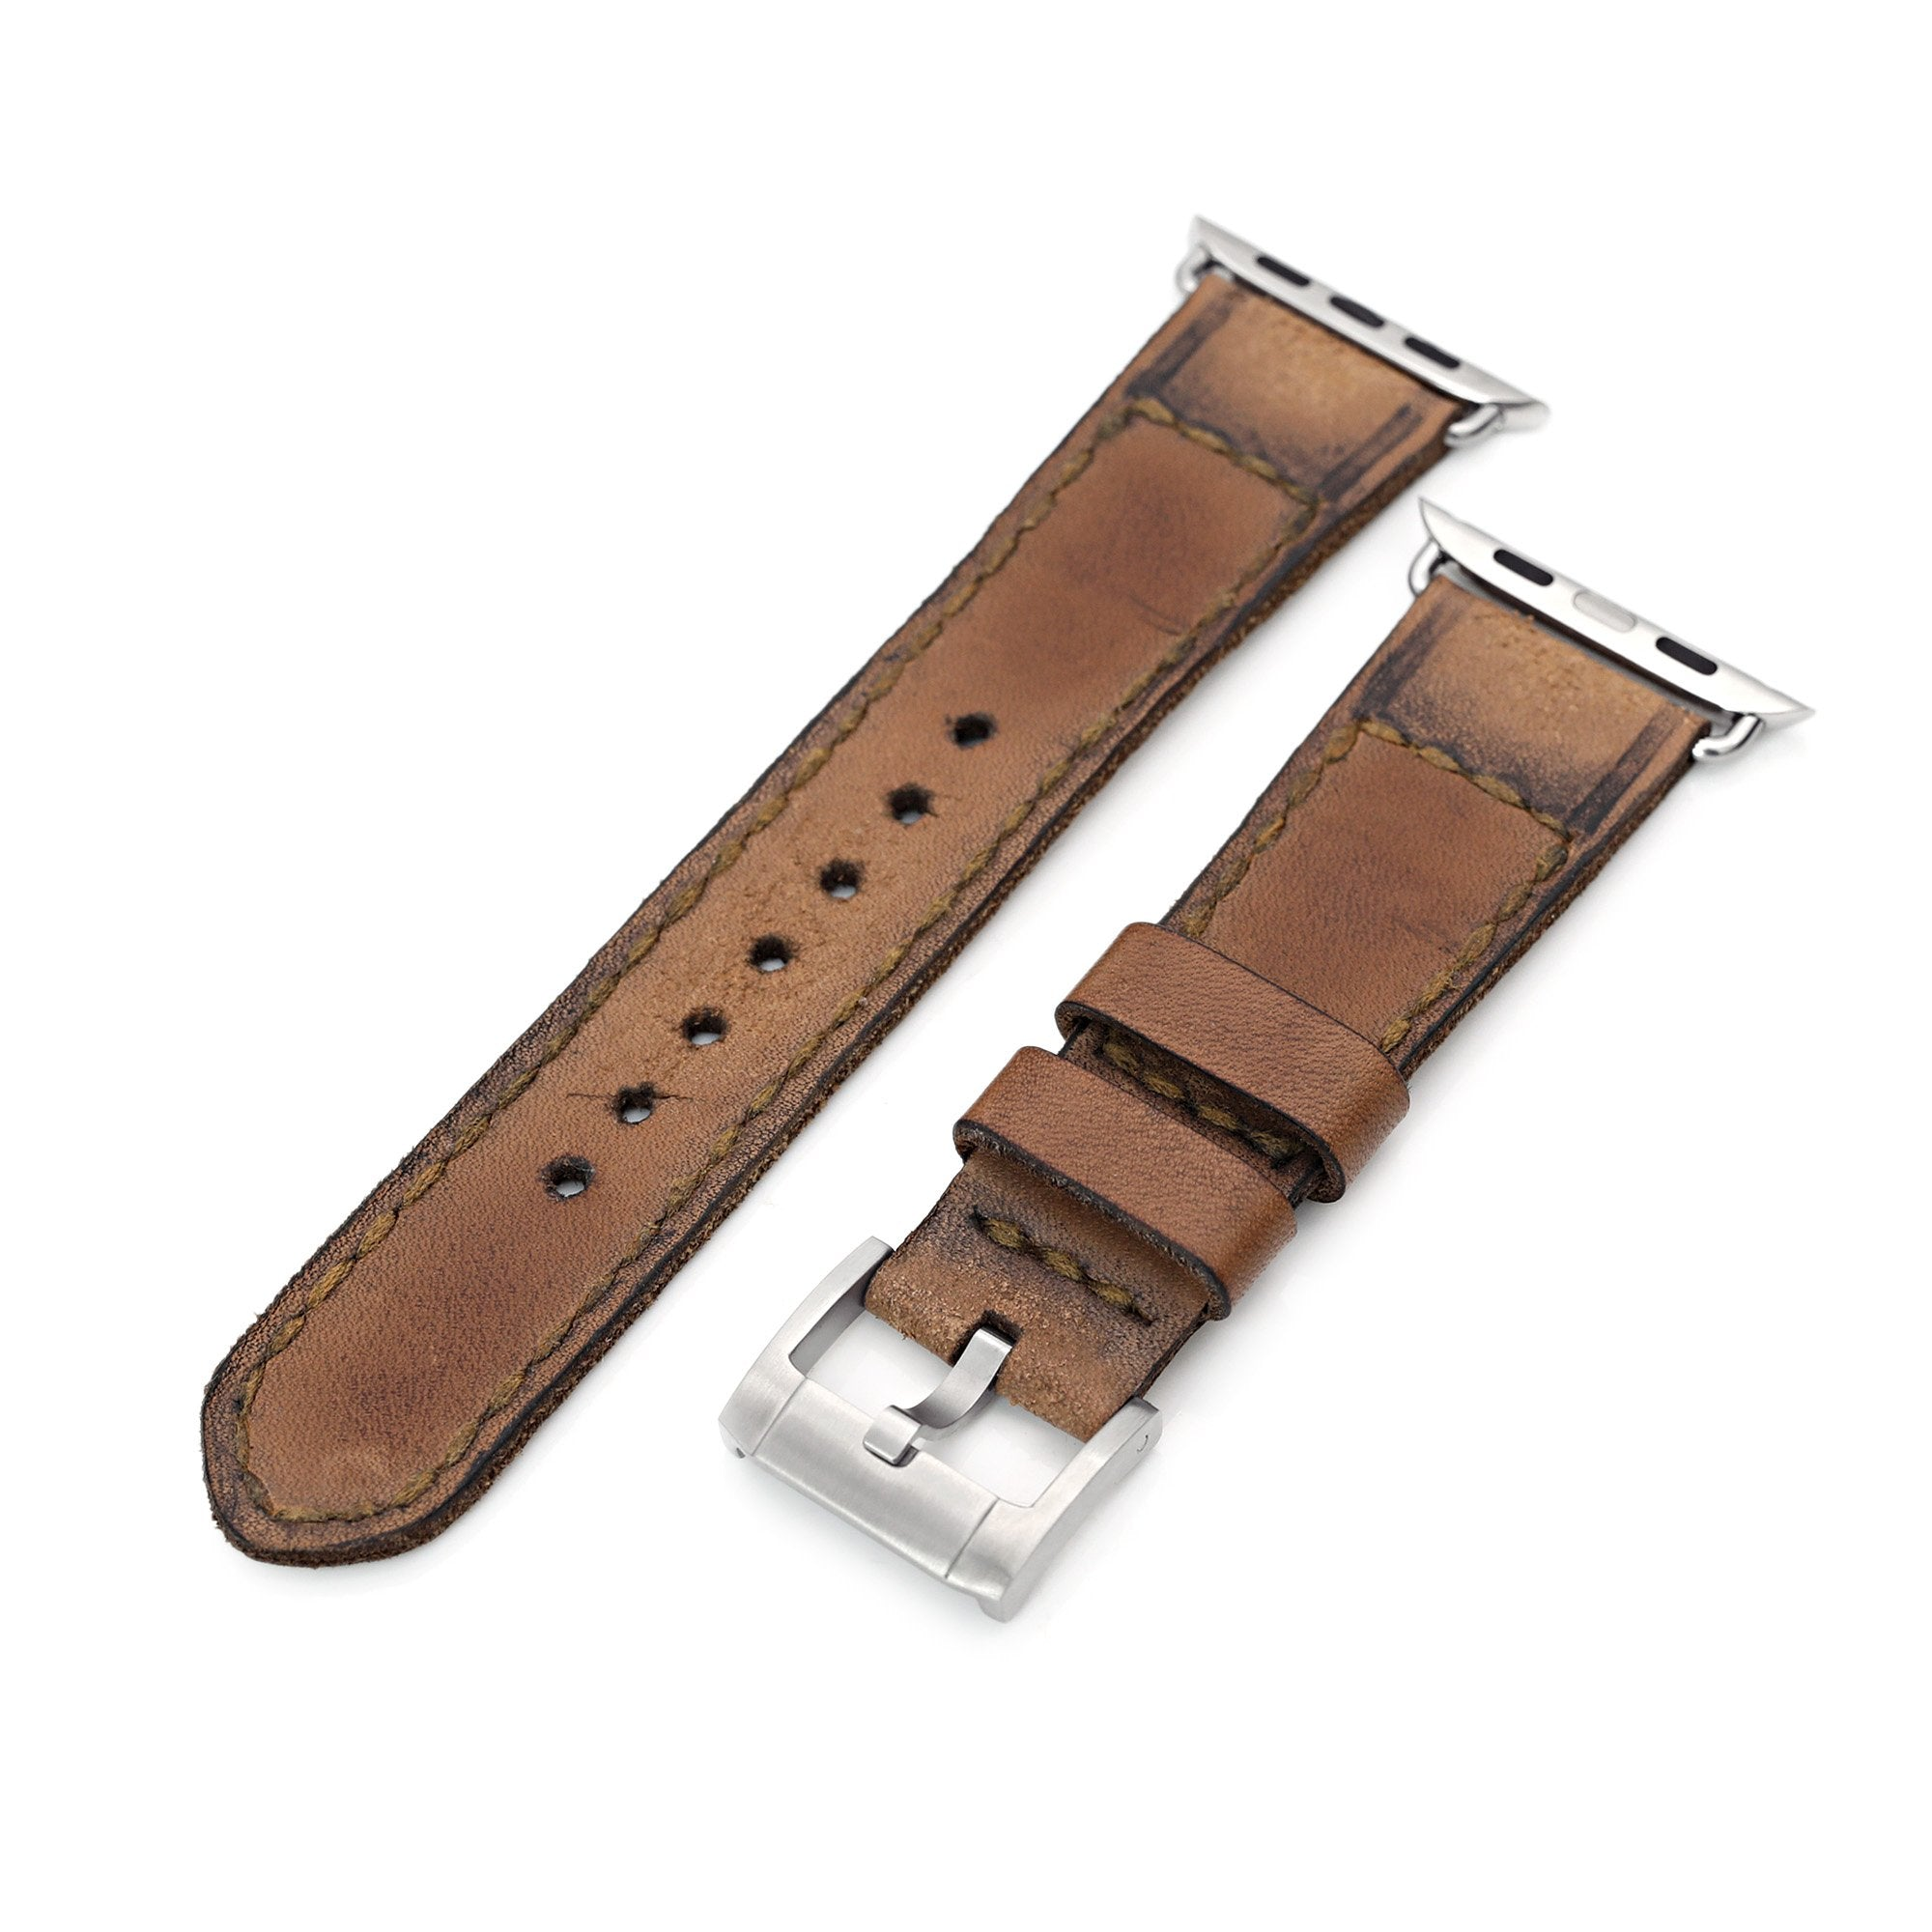 24mm Light Brown Handmade Apple watch Quick Release Leather Watch Strap Strapcode Watch Bands